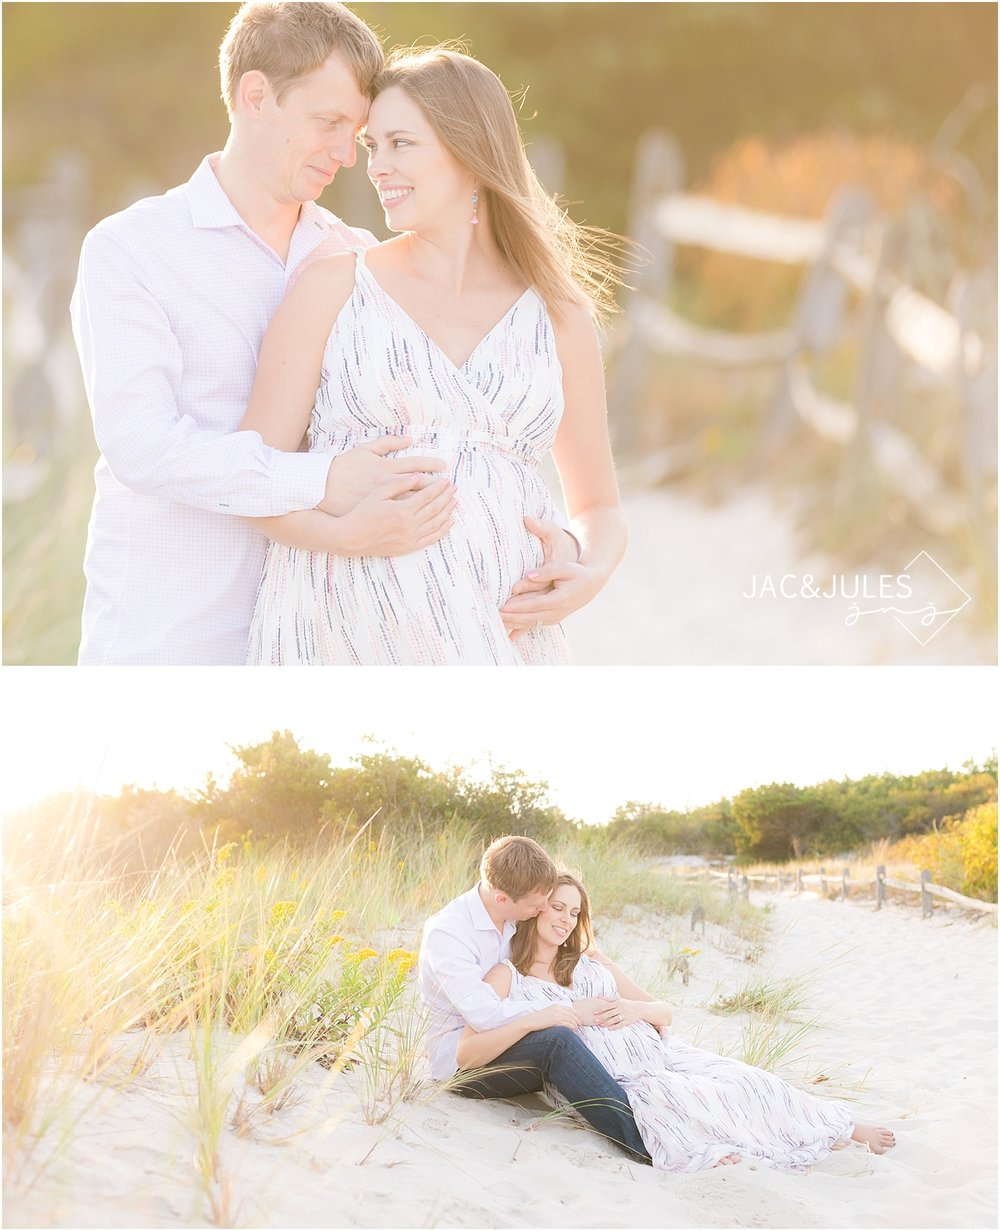 whimsical maternity photos in new jersey